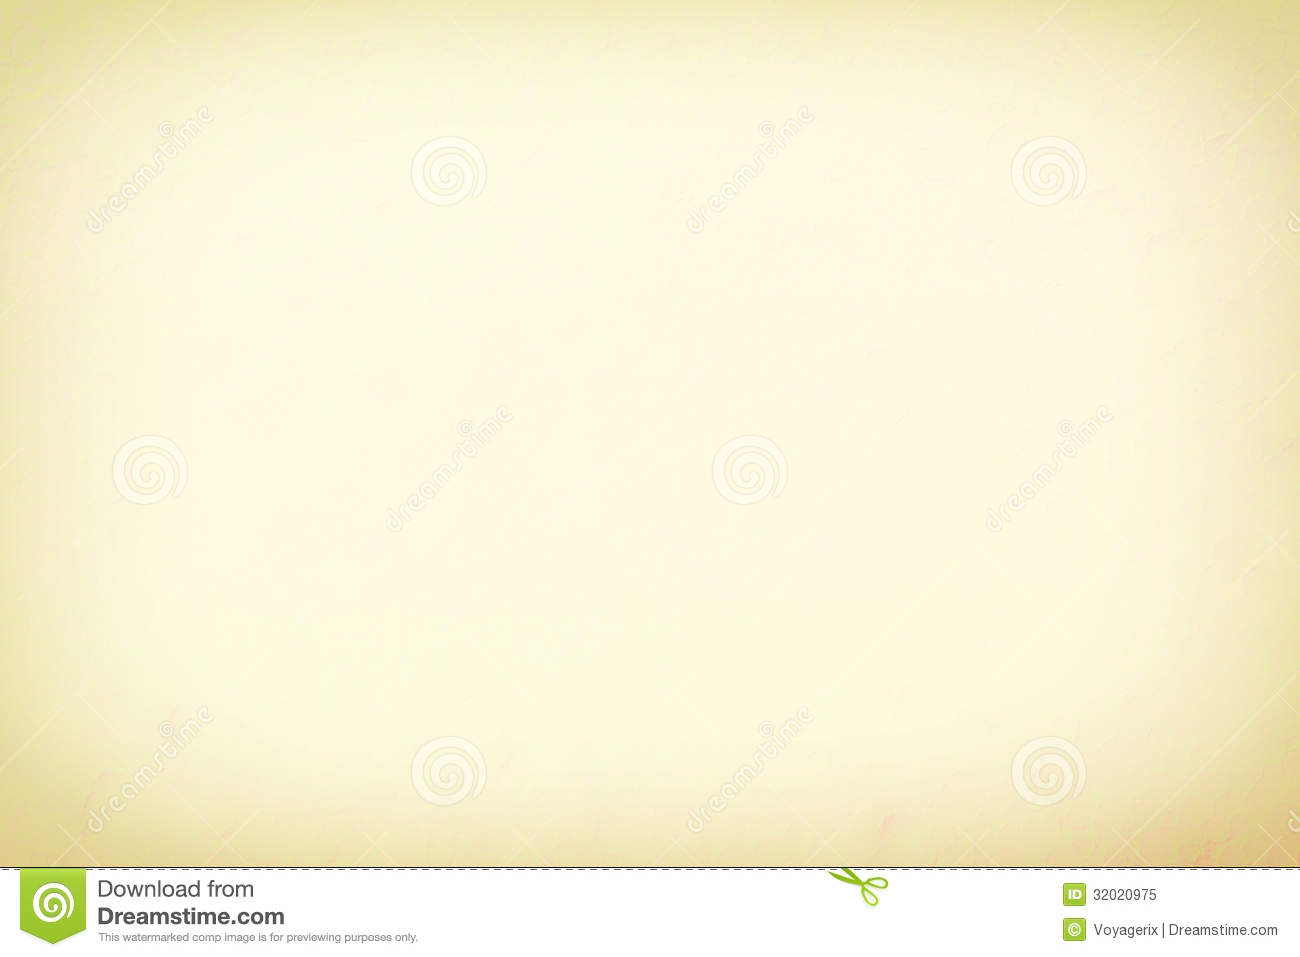 Old Car Wallpaper Download Soft Abstract Yellow Background Royalty Free Stock Photo